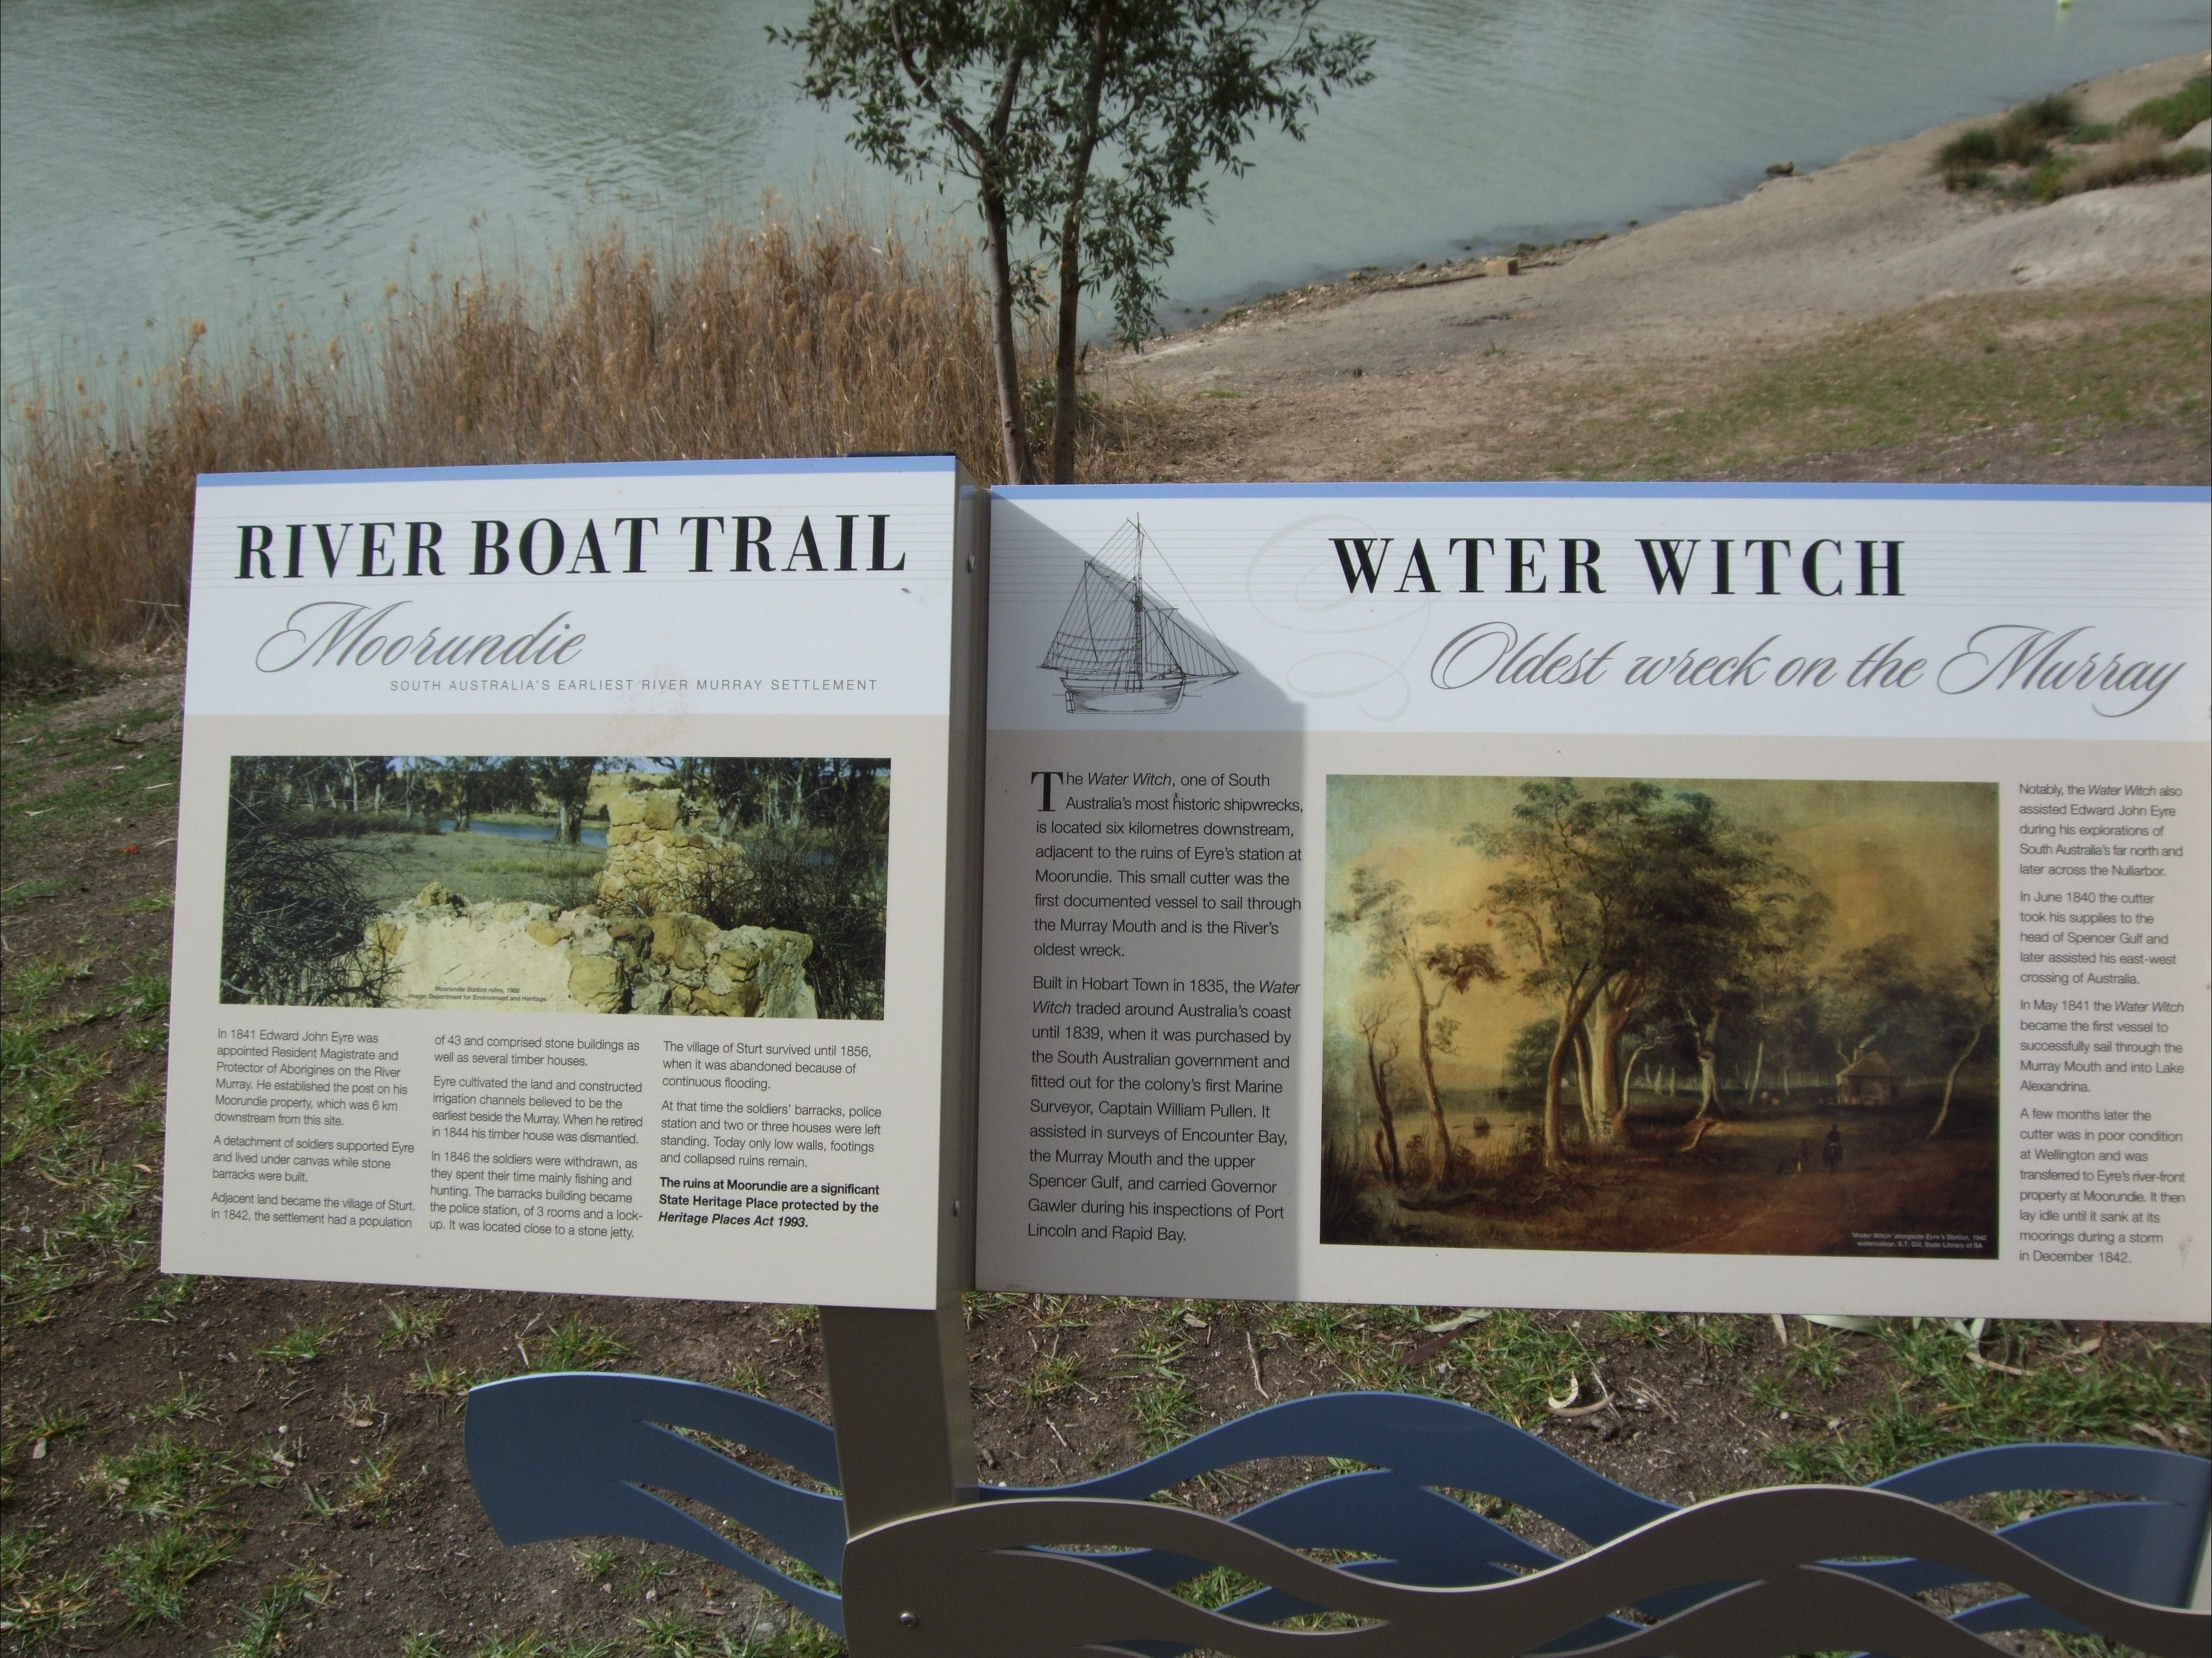 River Boat Trail - Accommodation Cairns